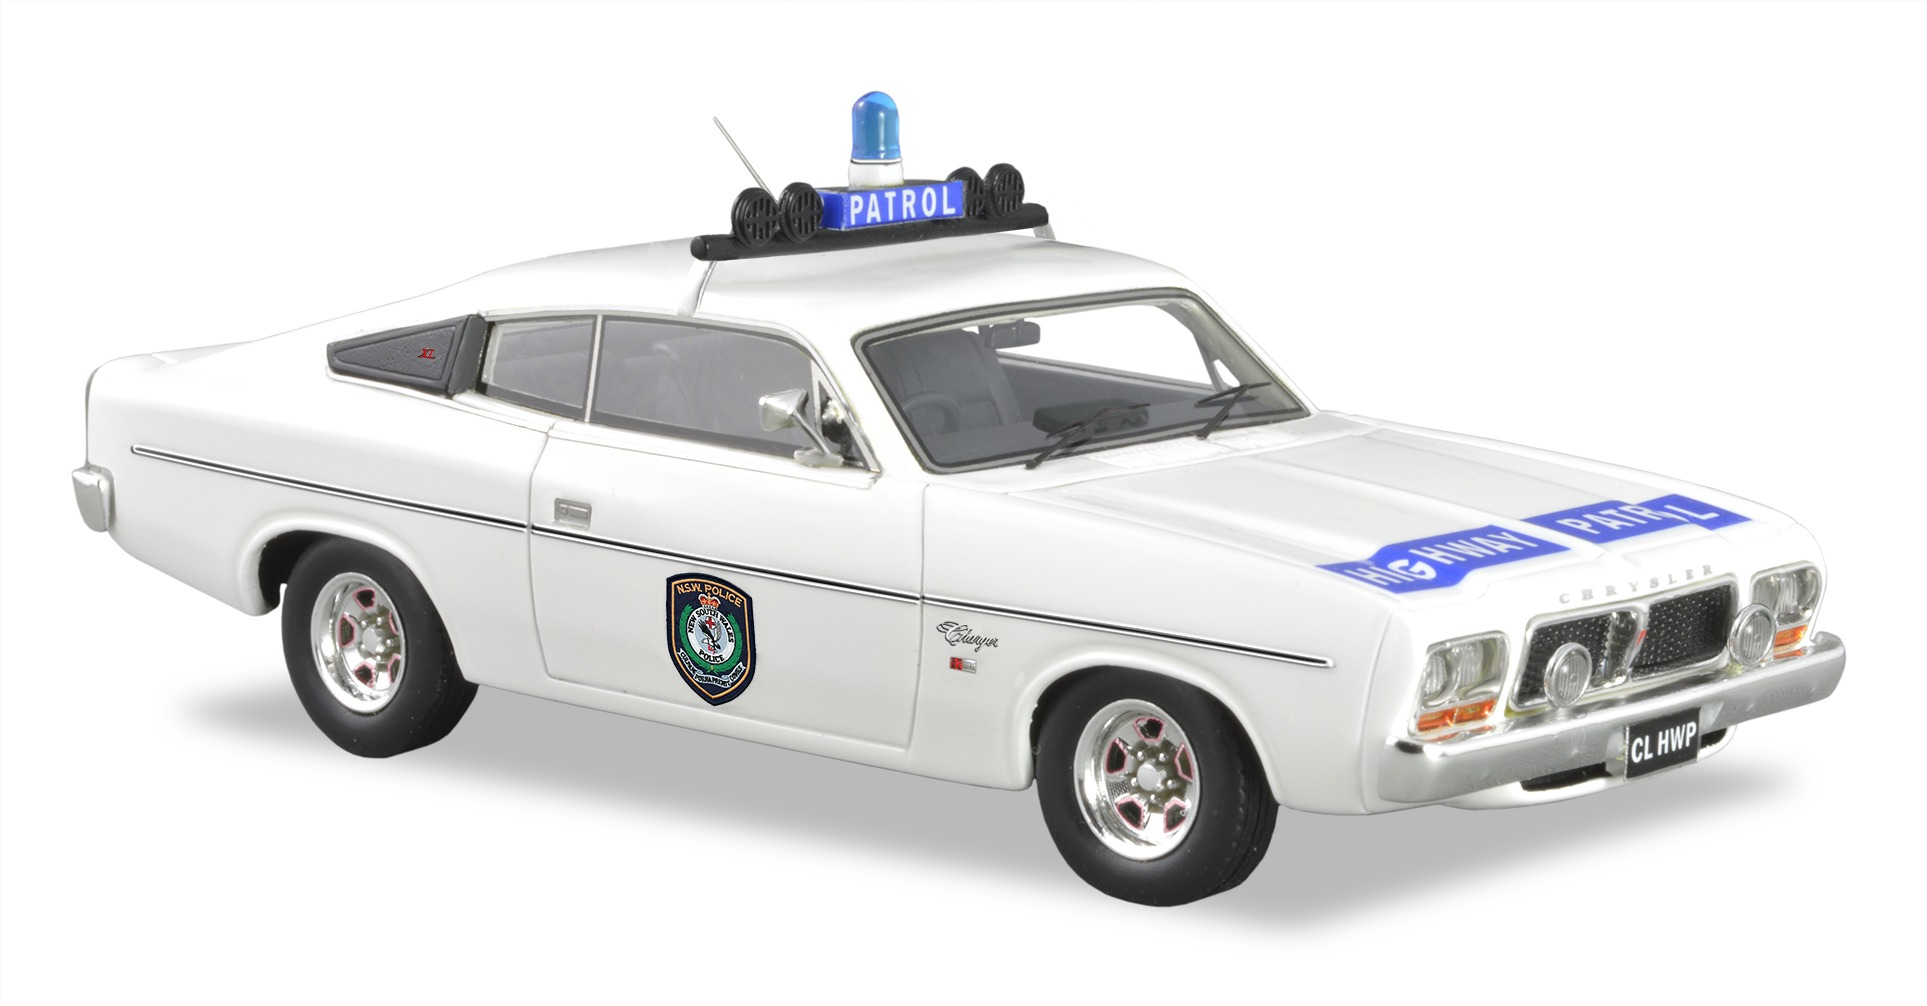 1976 CL Valiant K16 NSW Highway Patrol – White